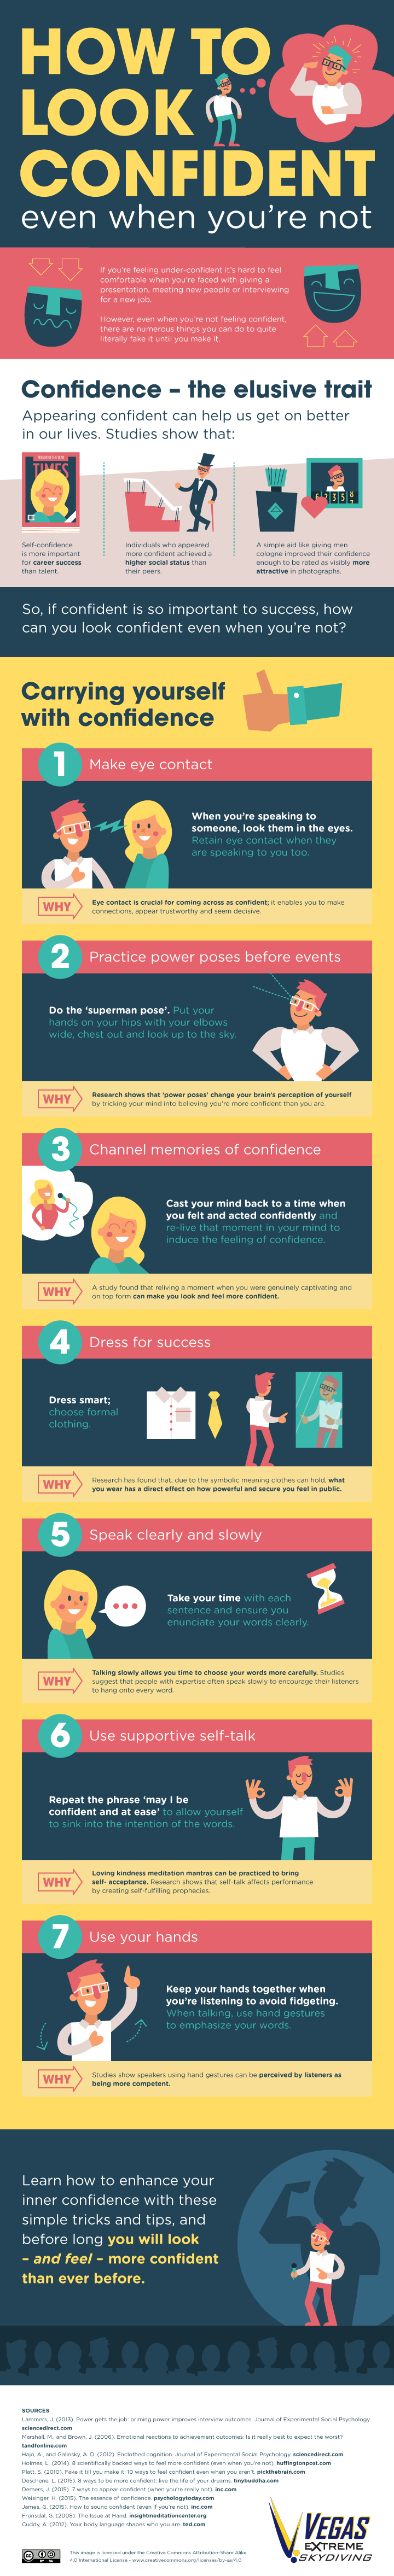 look-confident-infographic.png